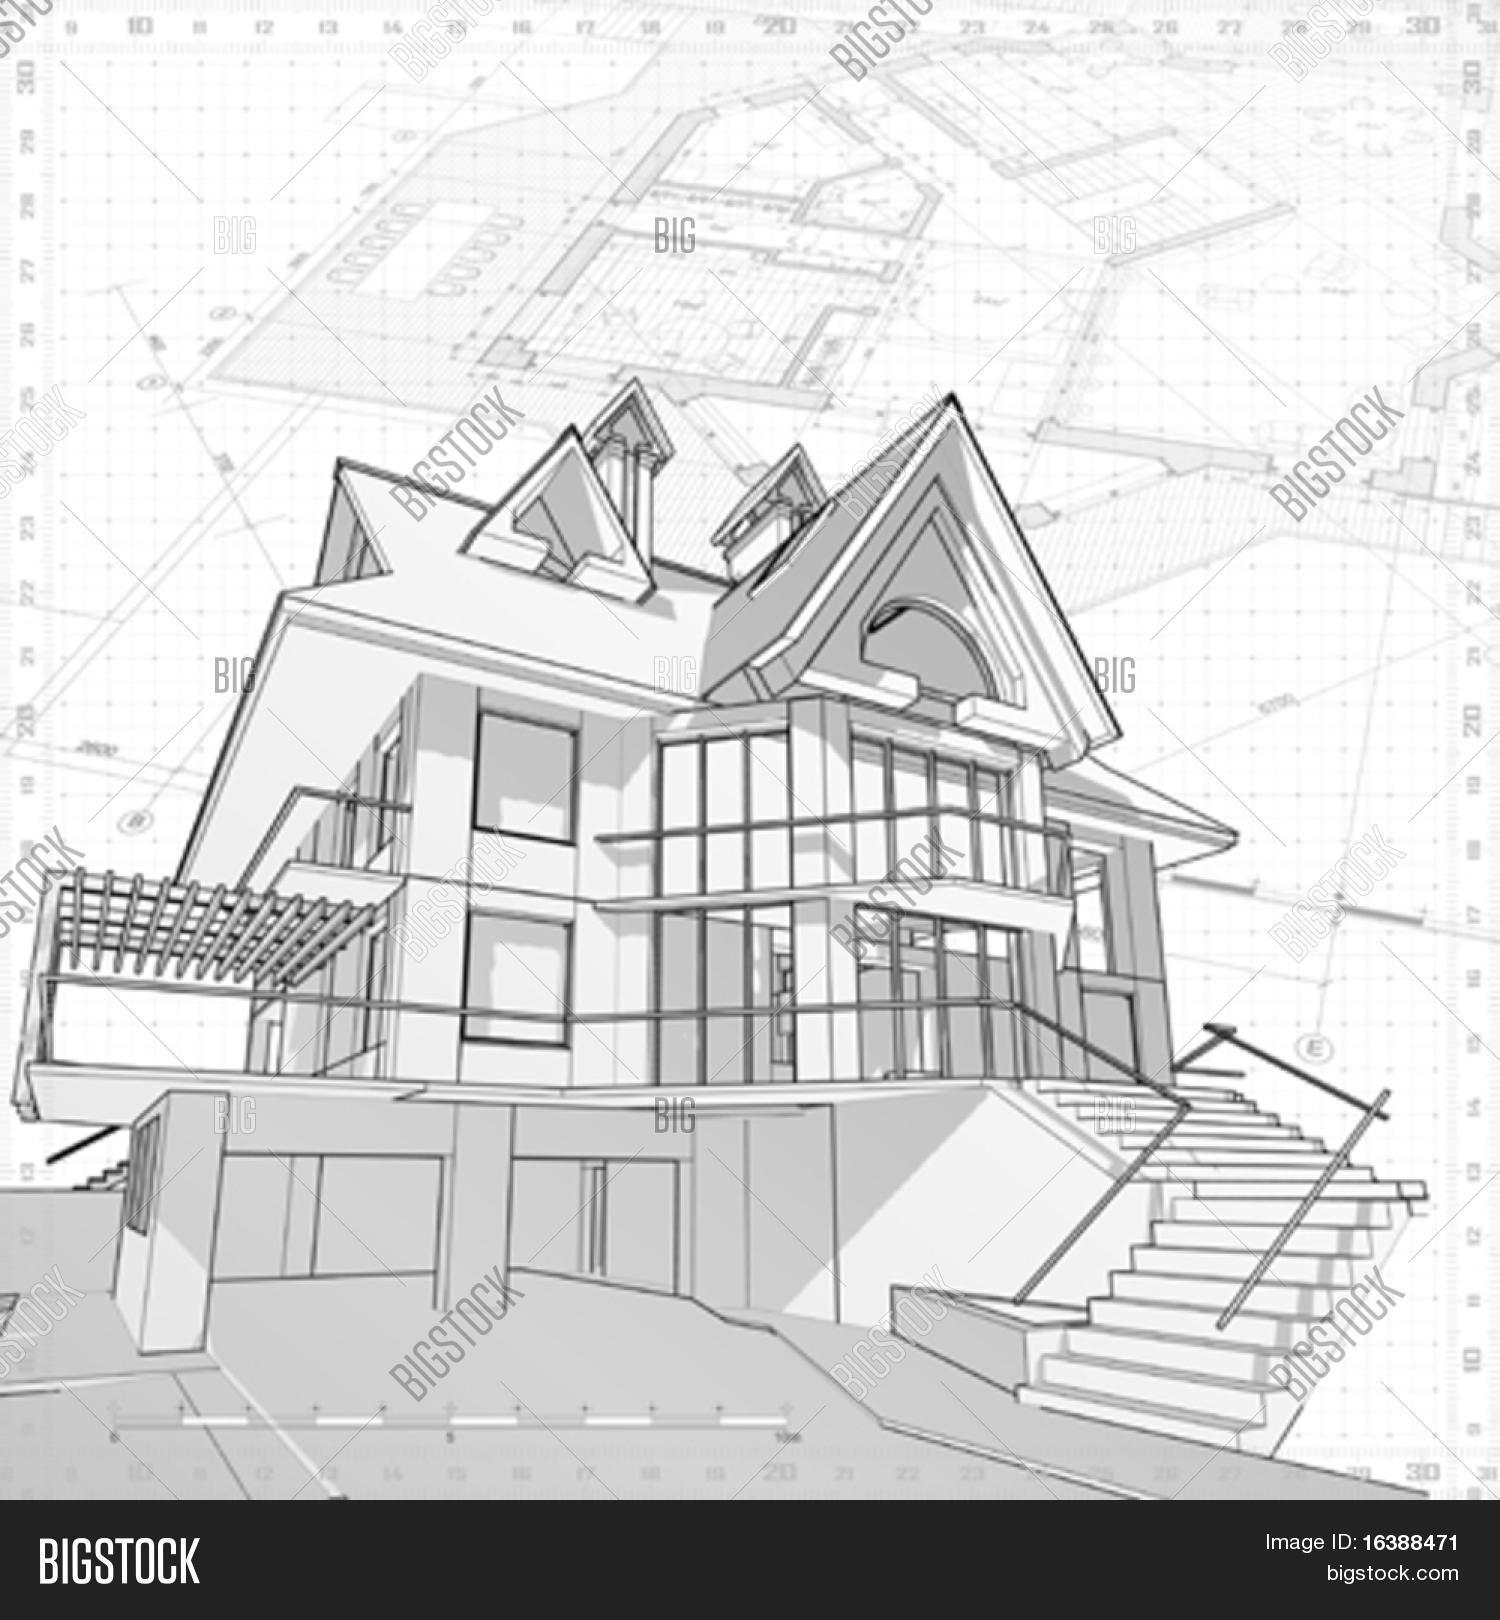 how to draw a big house pin by steffi c on architecture designs architecture big to draw house how a